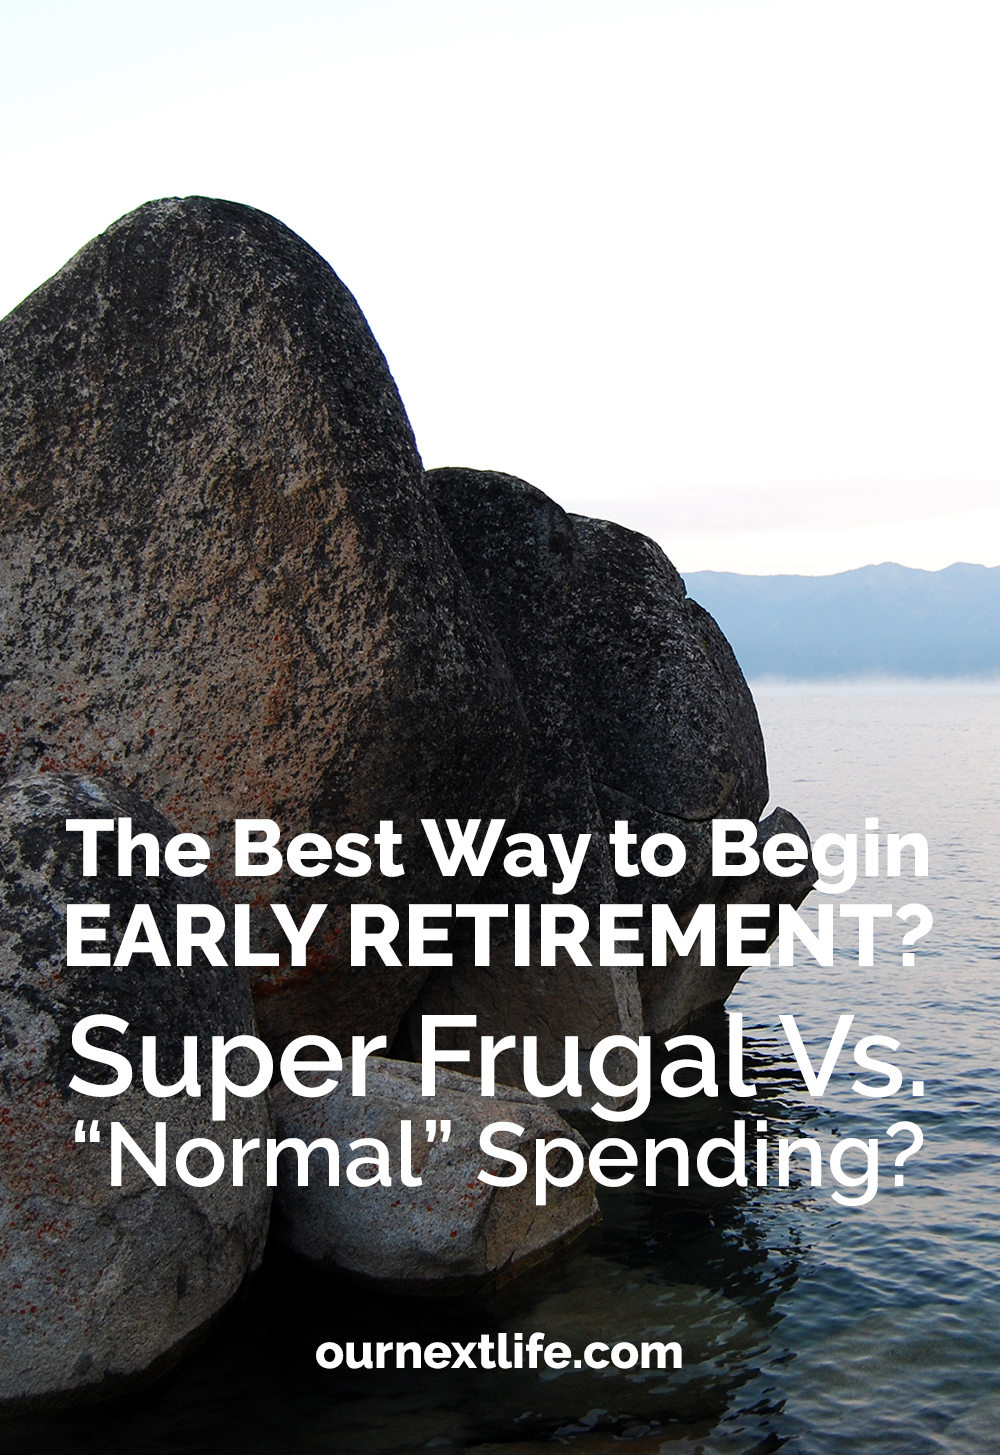 What's the best way to begin early retirement? By spending what you'd budgeted for, or by taking a super frugal approach to spending in the first year? We discuss pros and cons of each approach.